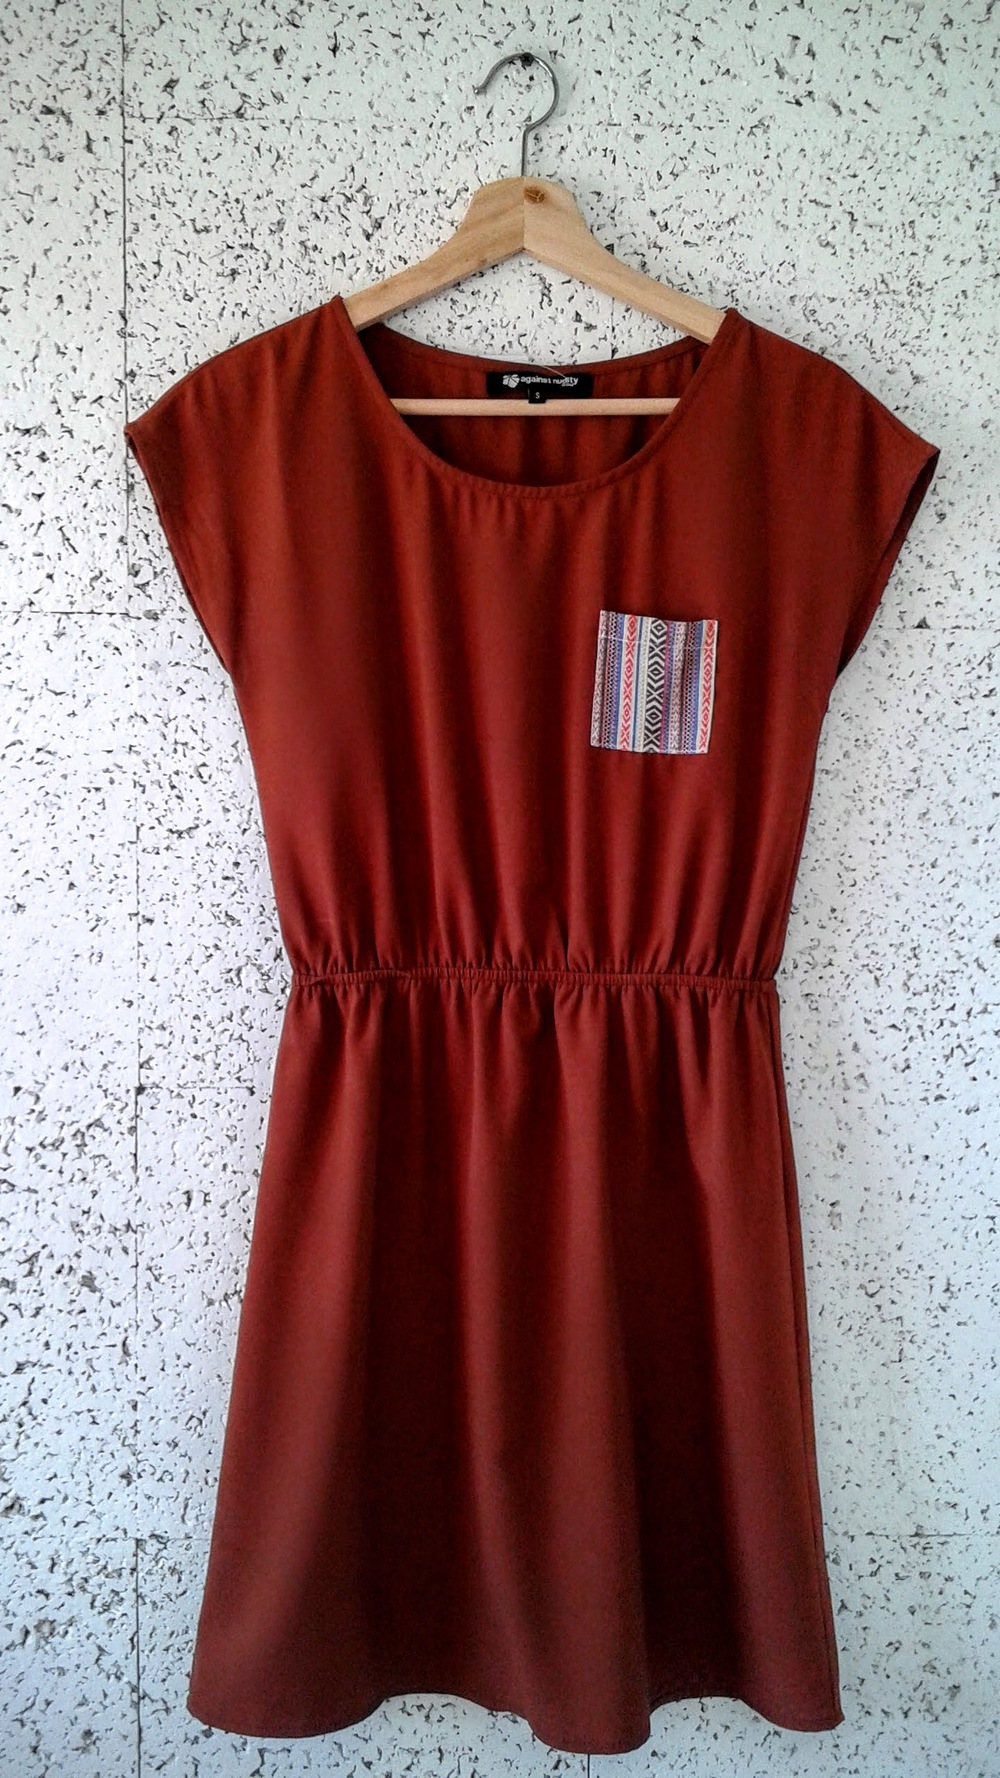 Against Nudity dress; Size S, $26